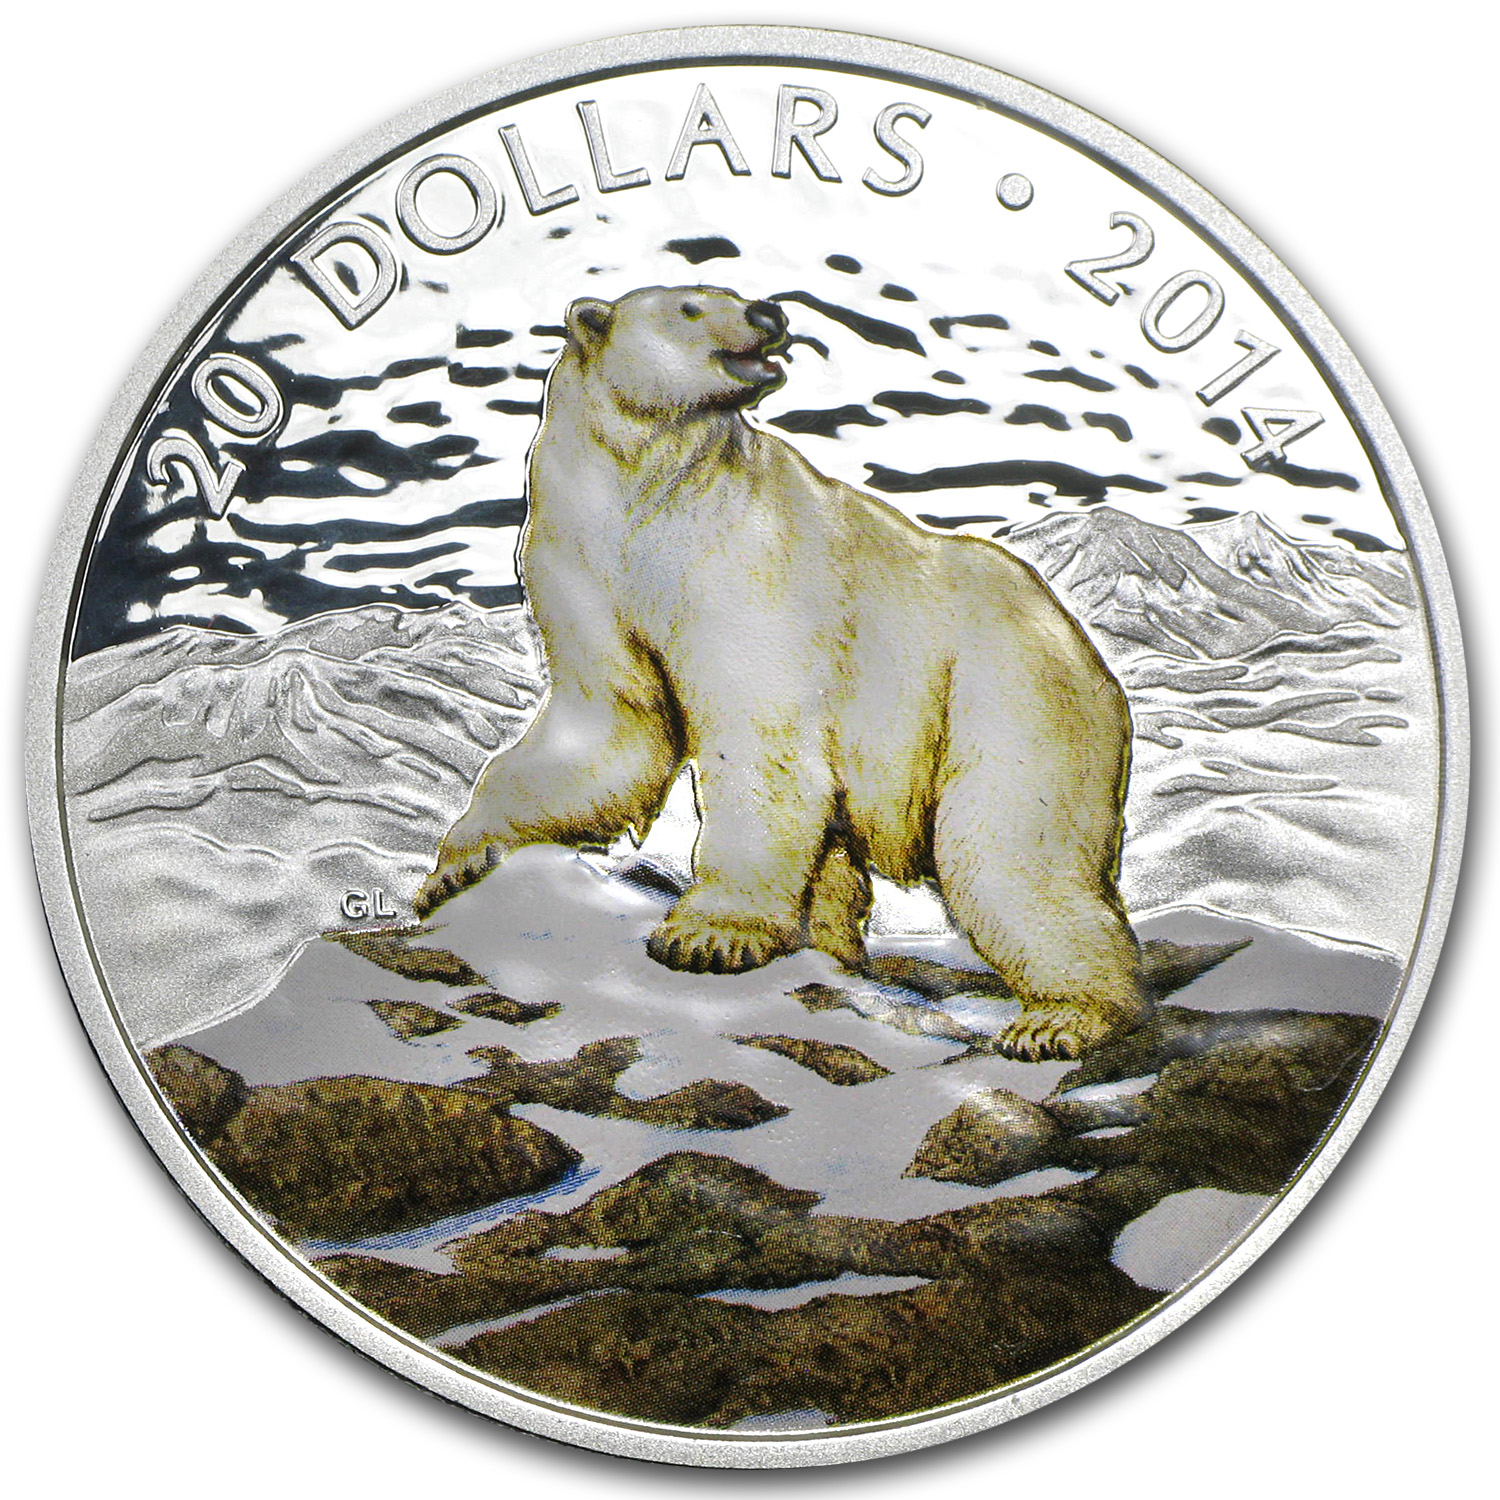 2014 Canada 1 oz Silver $20 Coin Iconic Polar Bear